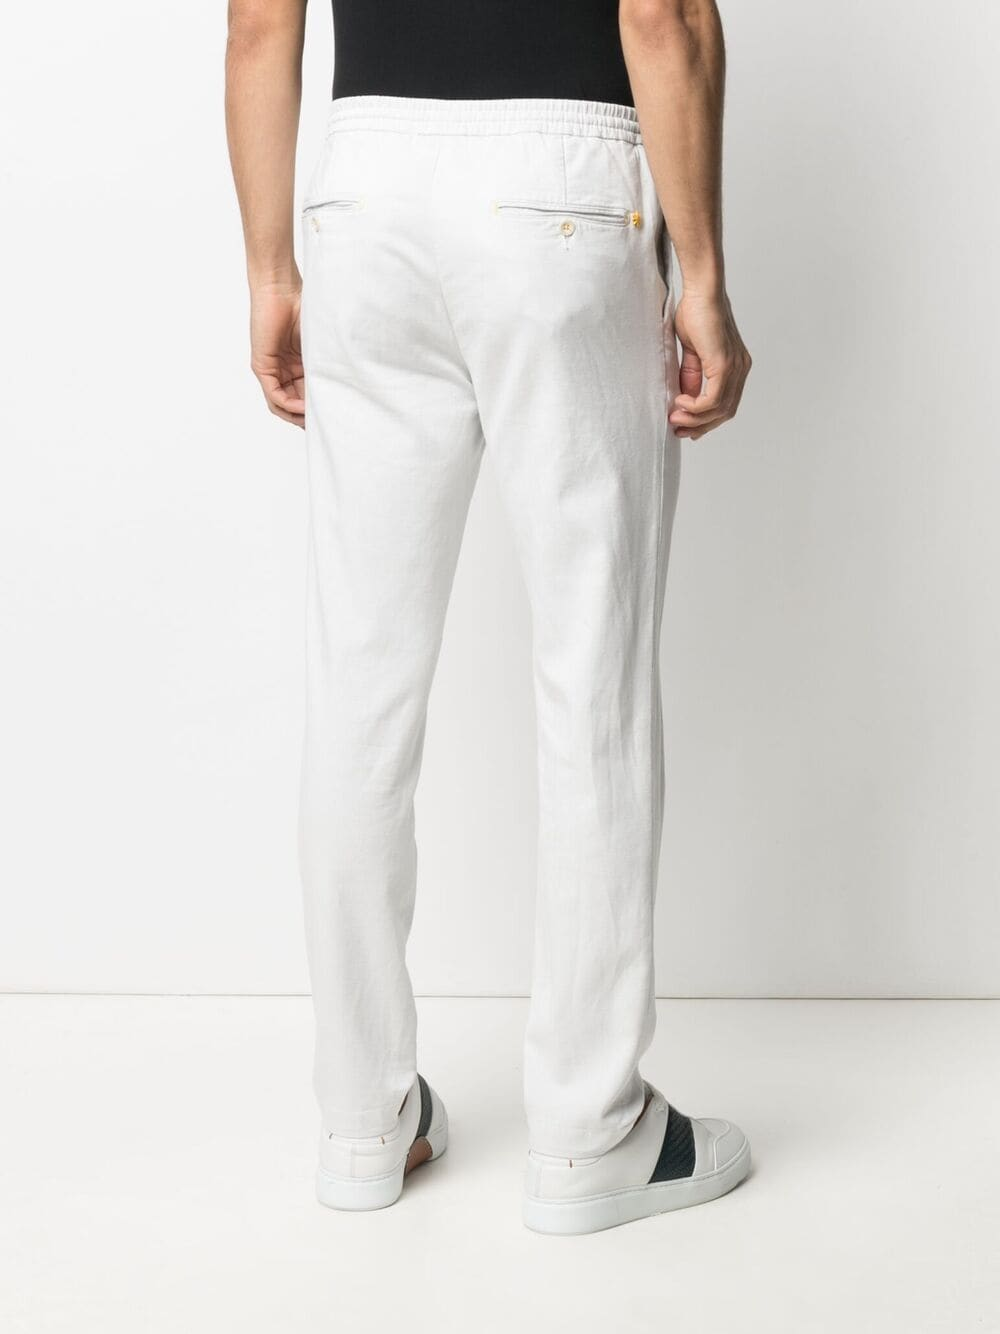 Off white cotton straight-leg trousers MANUEL RITZ |  | 3032P1688T-21300602